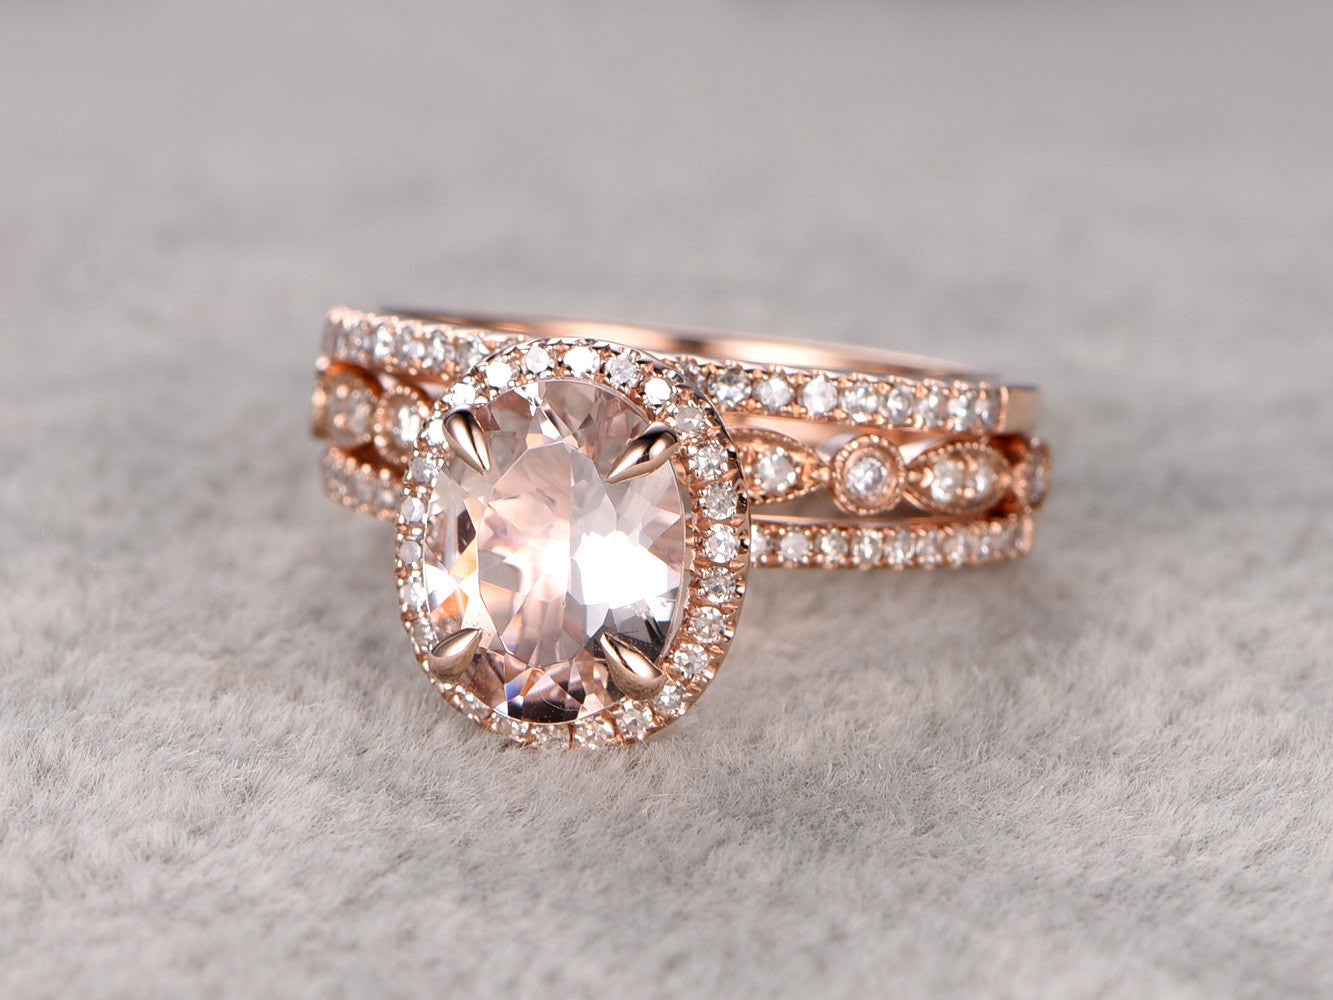 3pc 7x9mm Morganite Wedding ring set!Diamond Engagement ring Rose gold,14k,Gemstone Promise Bridal Ring,Claw Prongs,Halo Half Eternity band